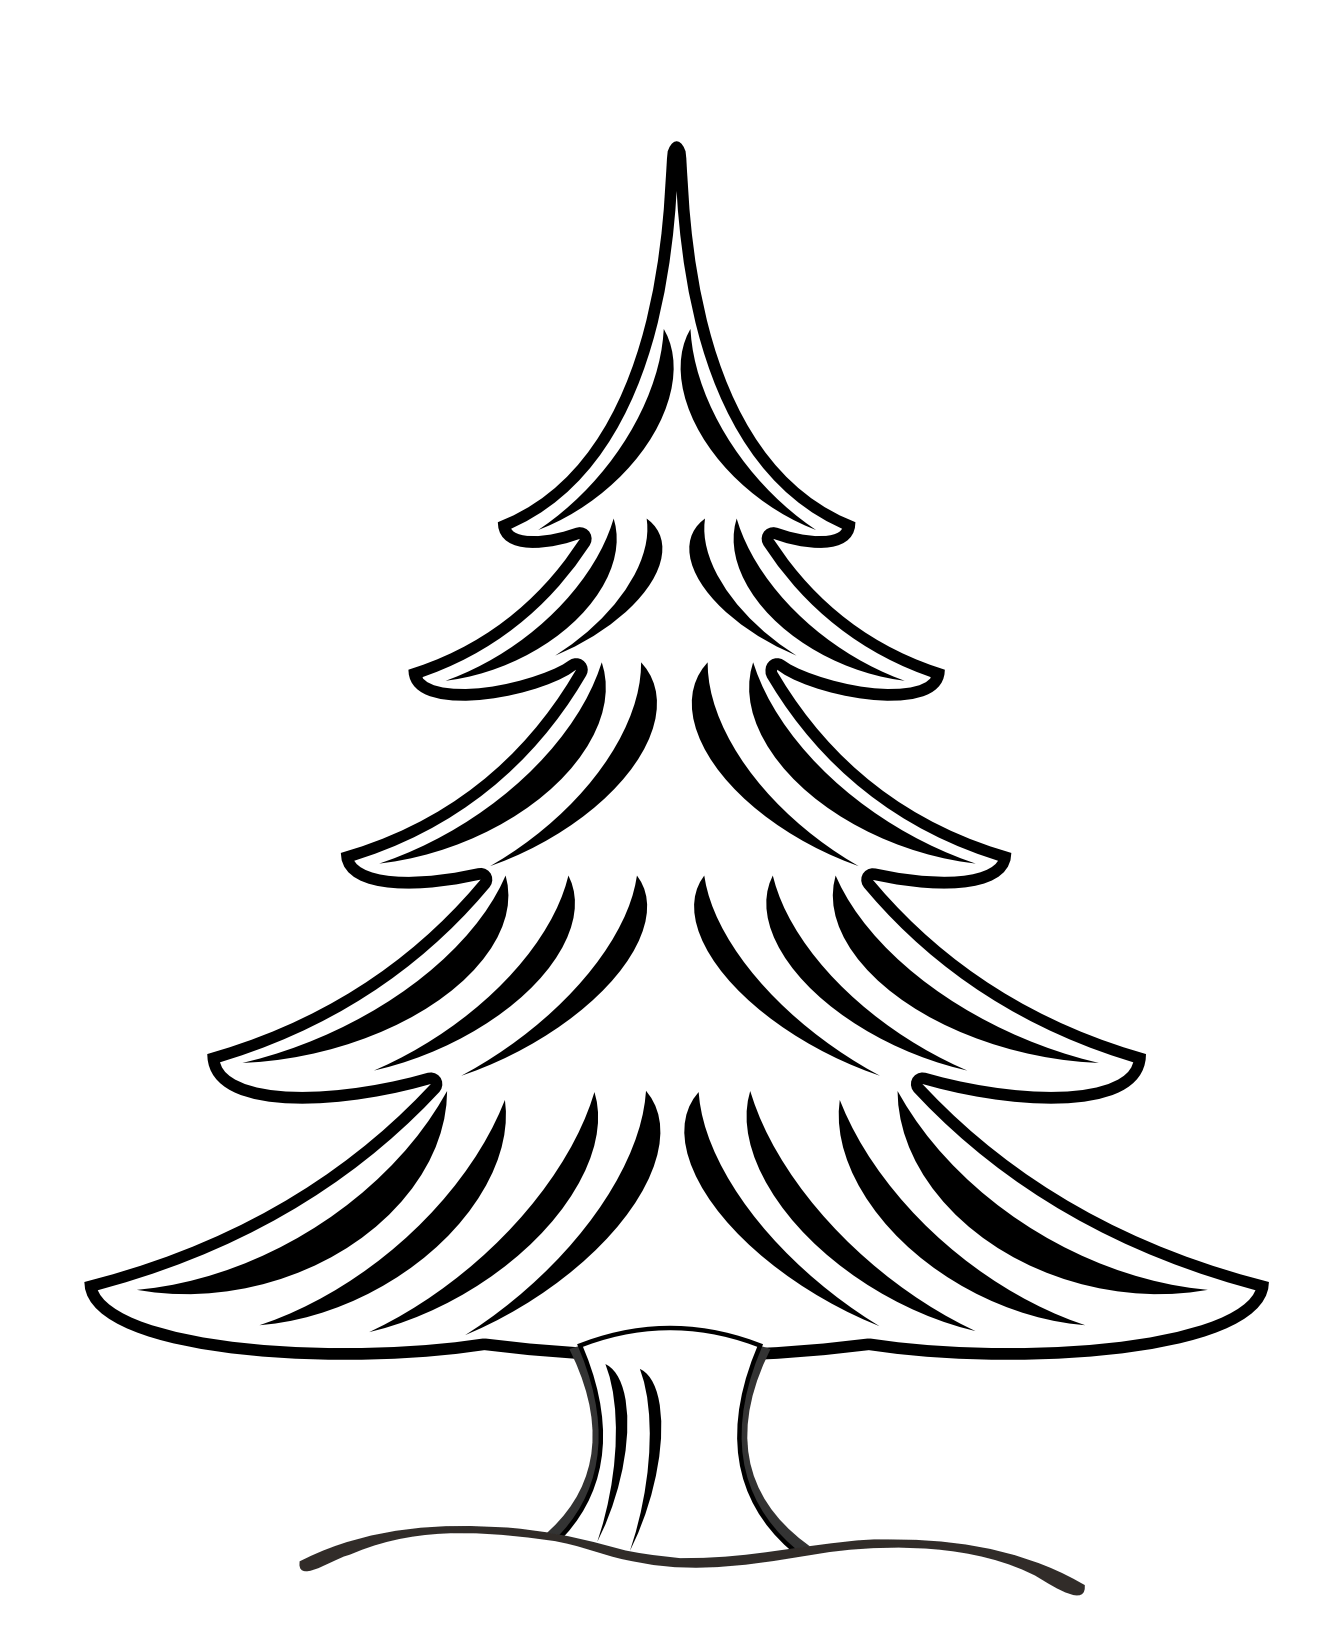 Clip Art Christmas Tree Black And White